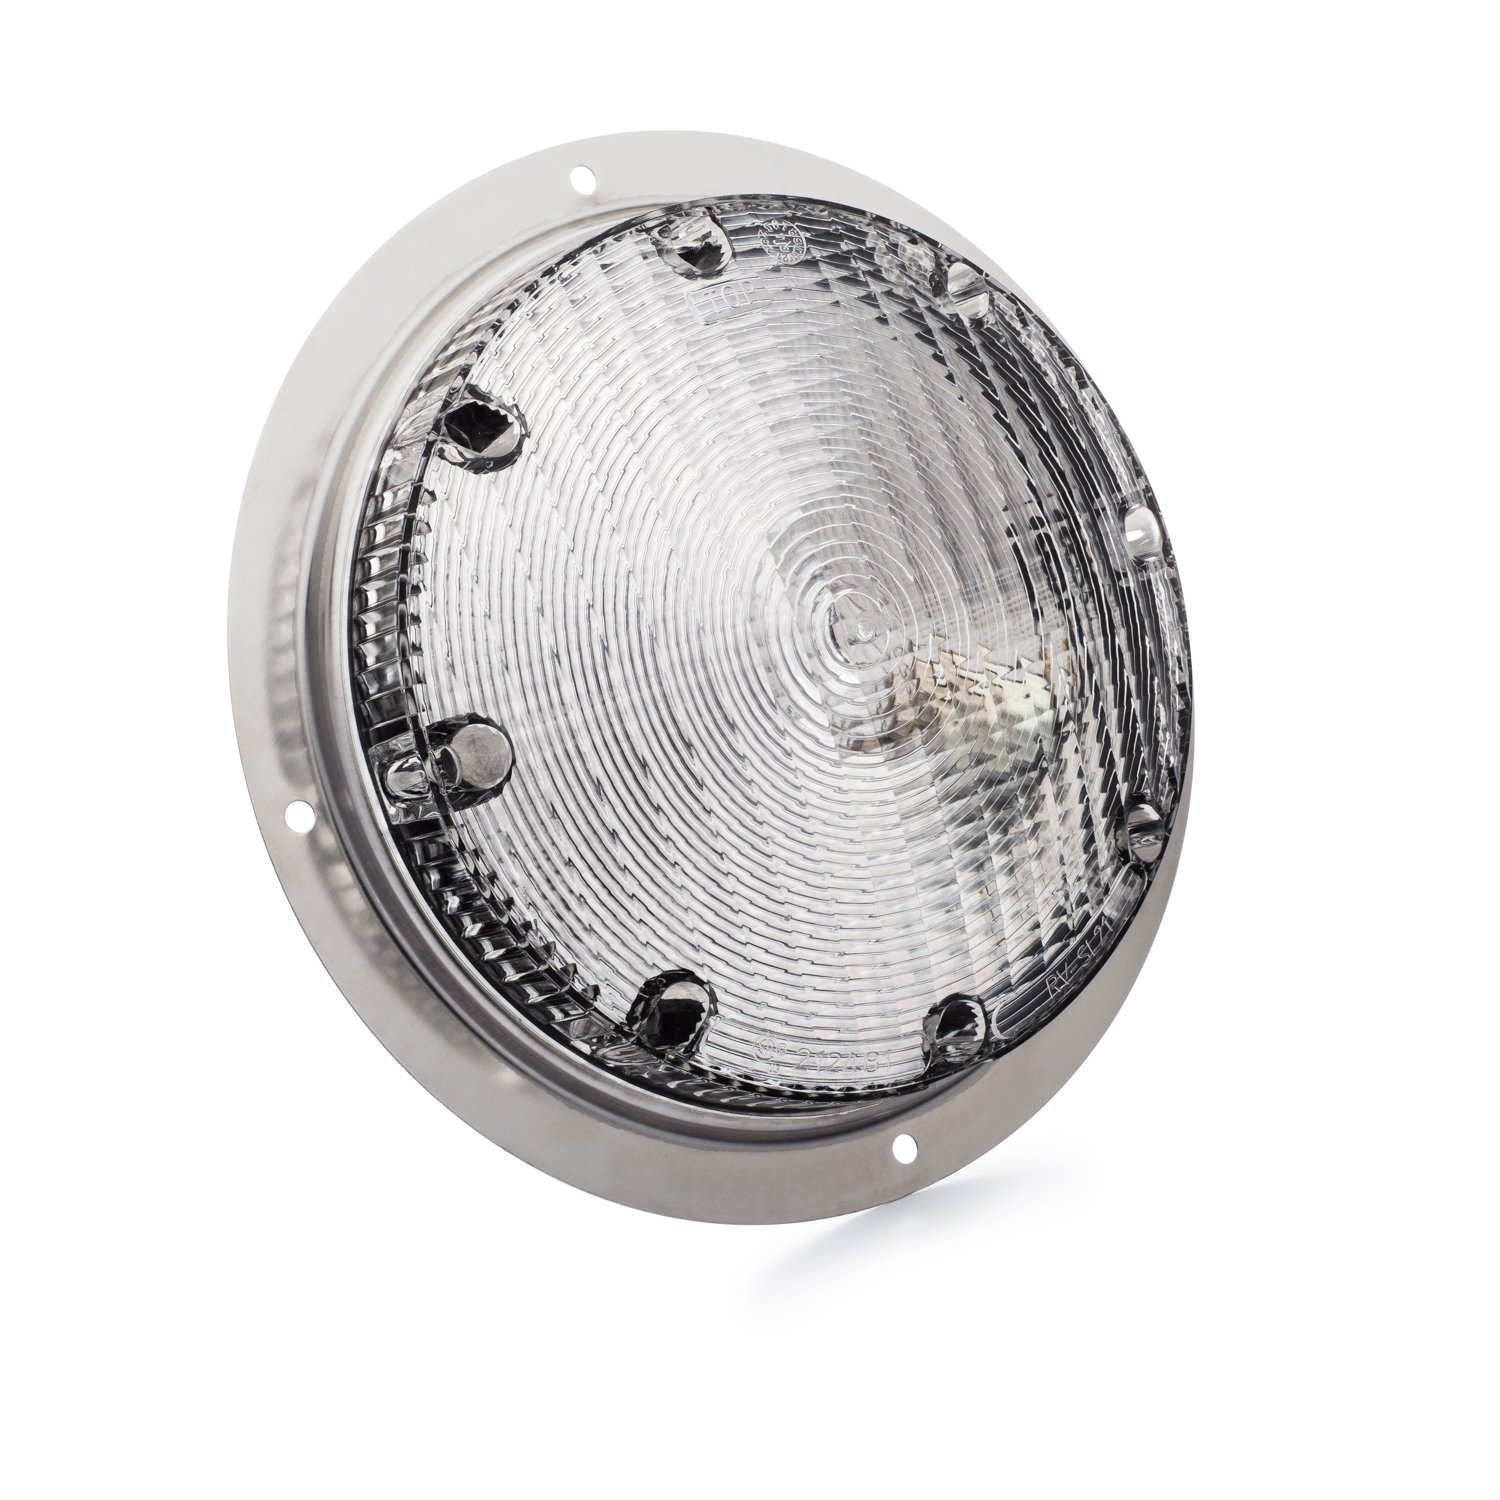 Lumitronics Surface Mount Porch Scare Light w//Mounting Gasket Mounting Hardware Included Featuring Stainless Steel Silver Base Feel Safe At Night With A Powerful Scare Light